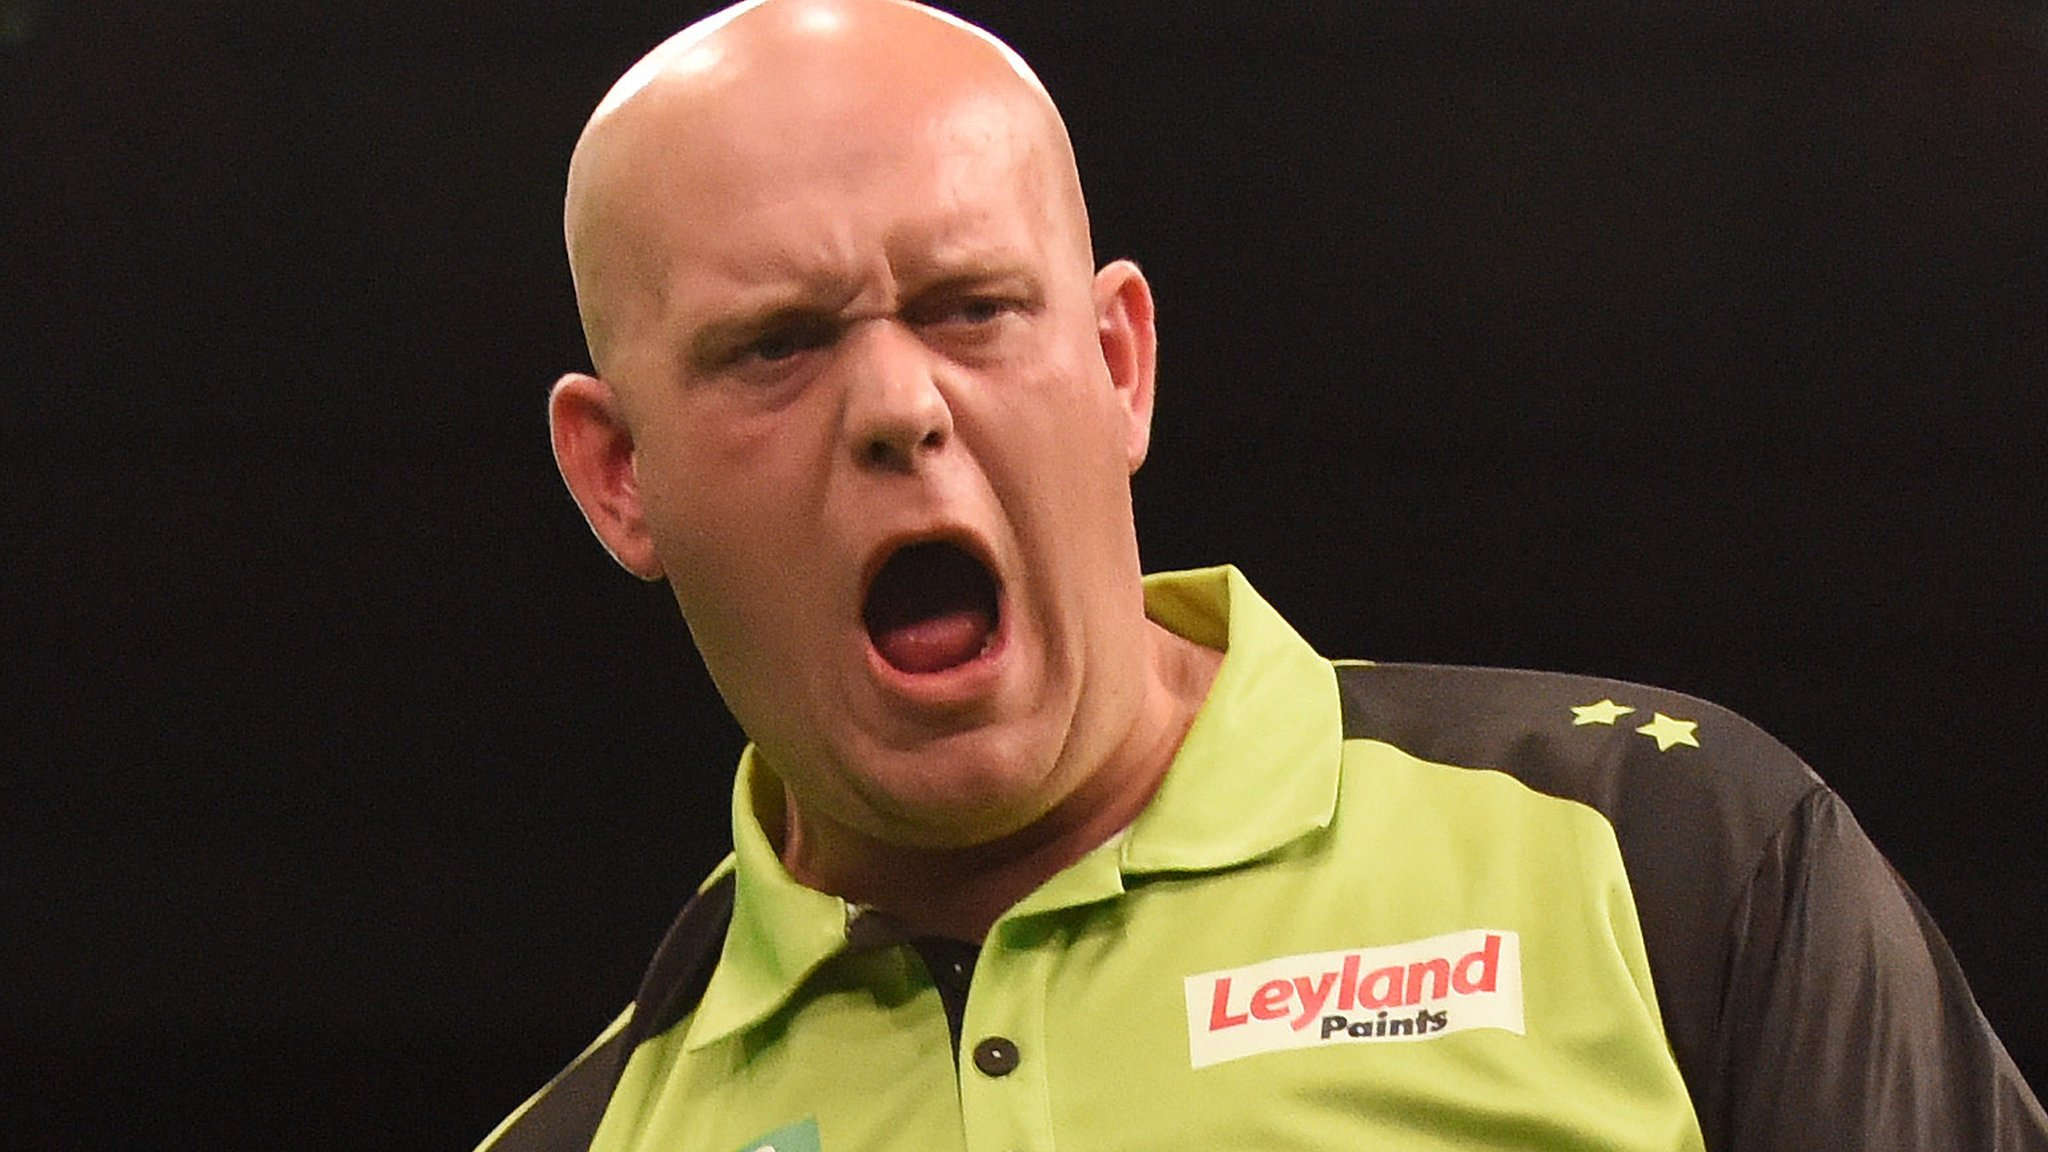 Champions League of Darts: Mesnur Suljovic & Michael van Gerwen start with two wins